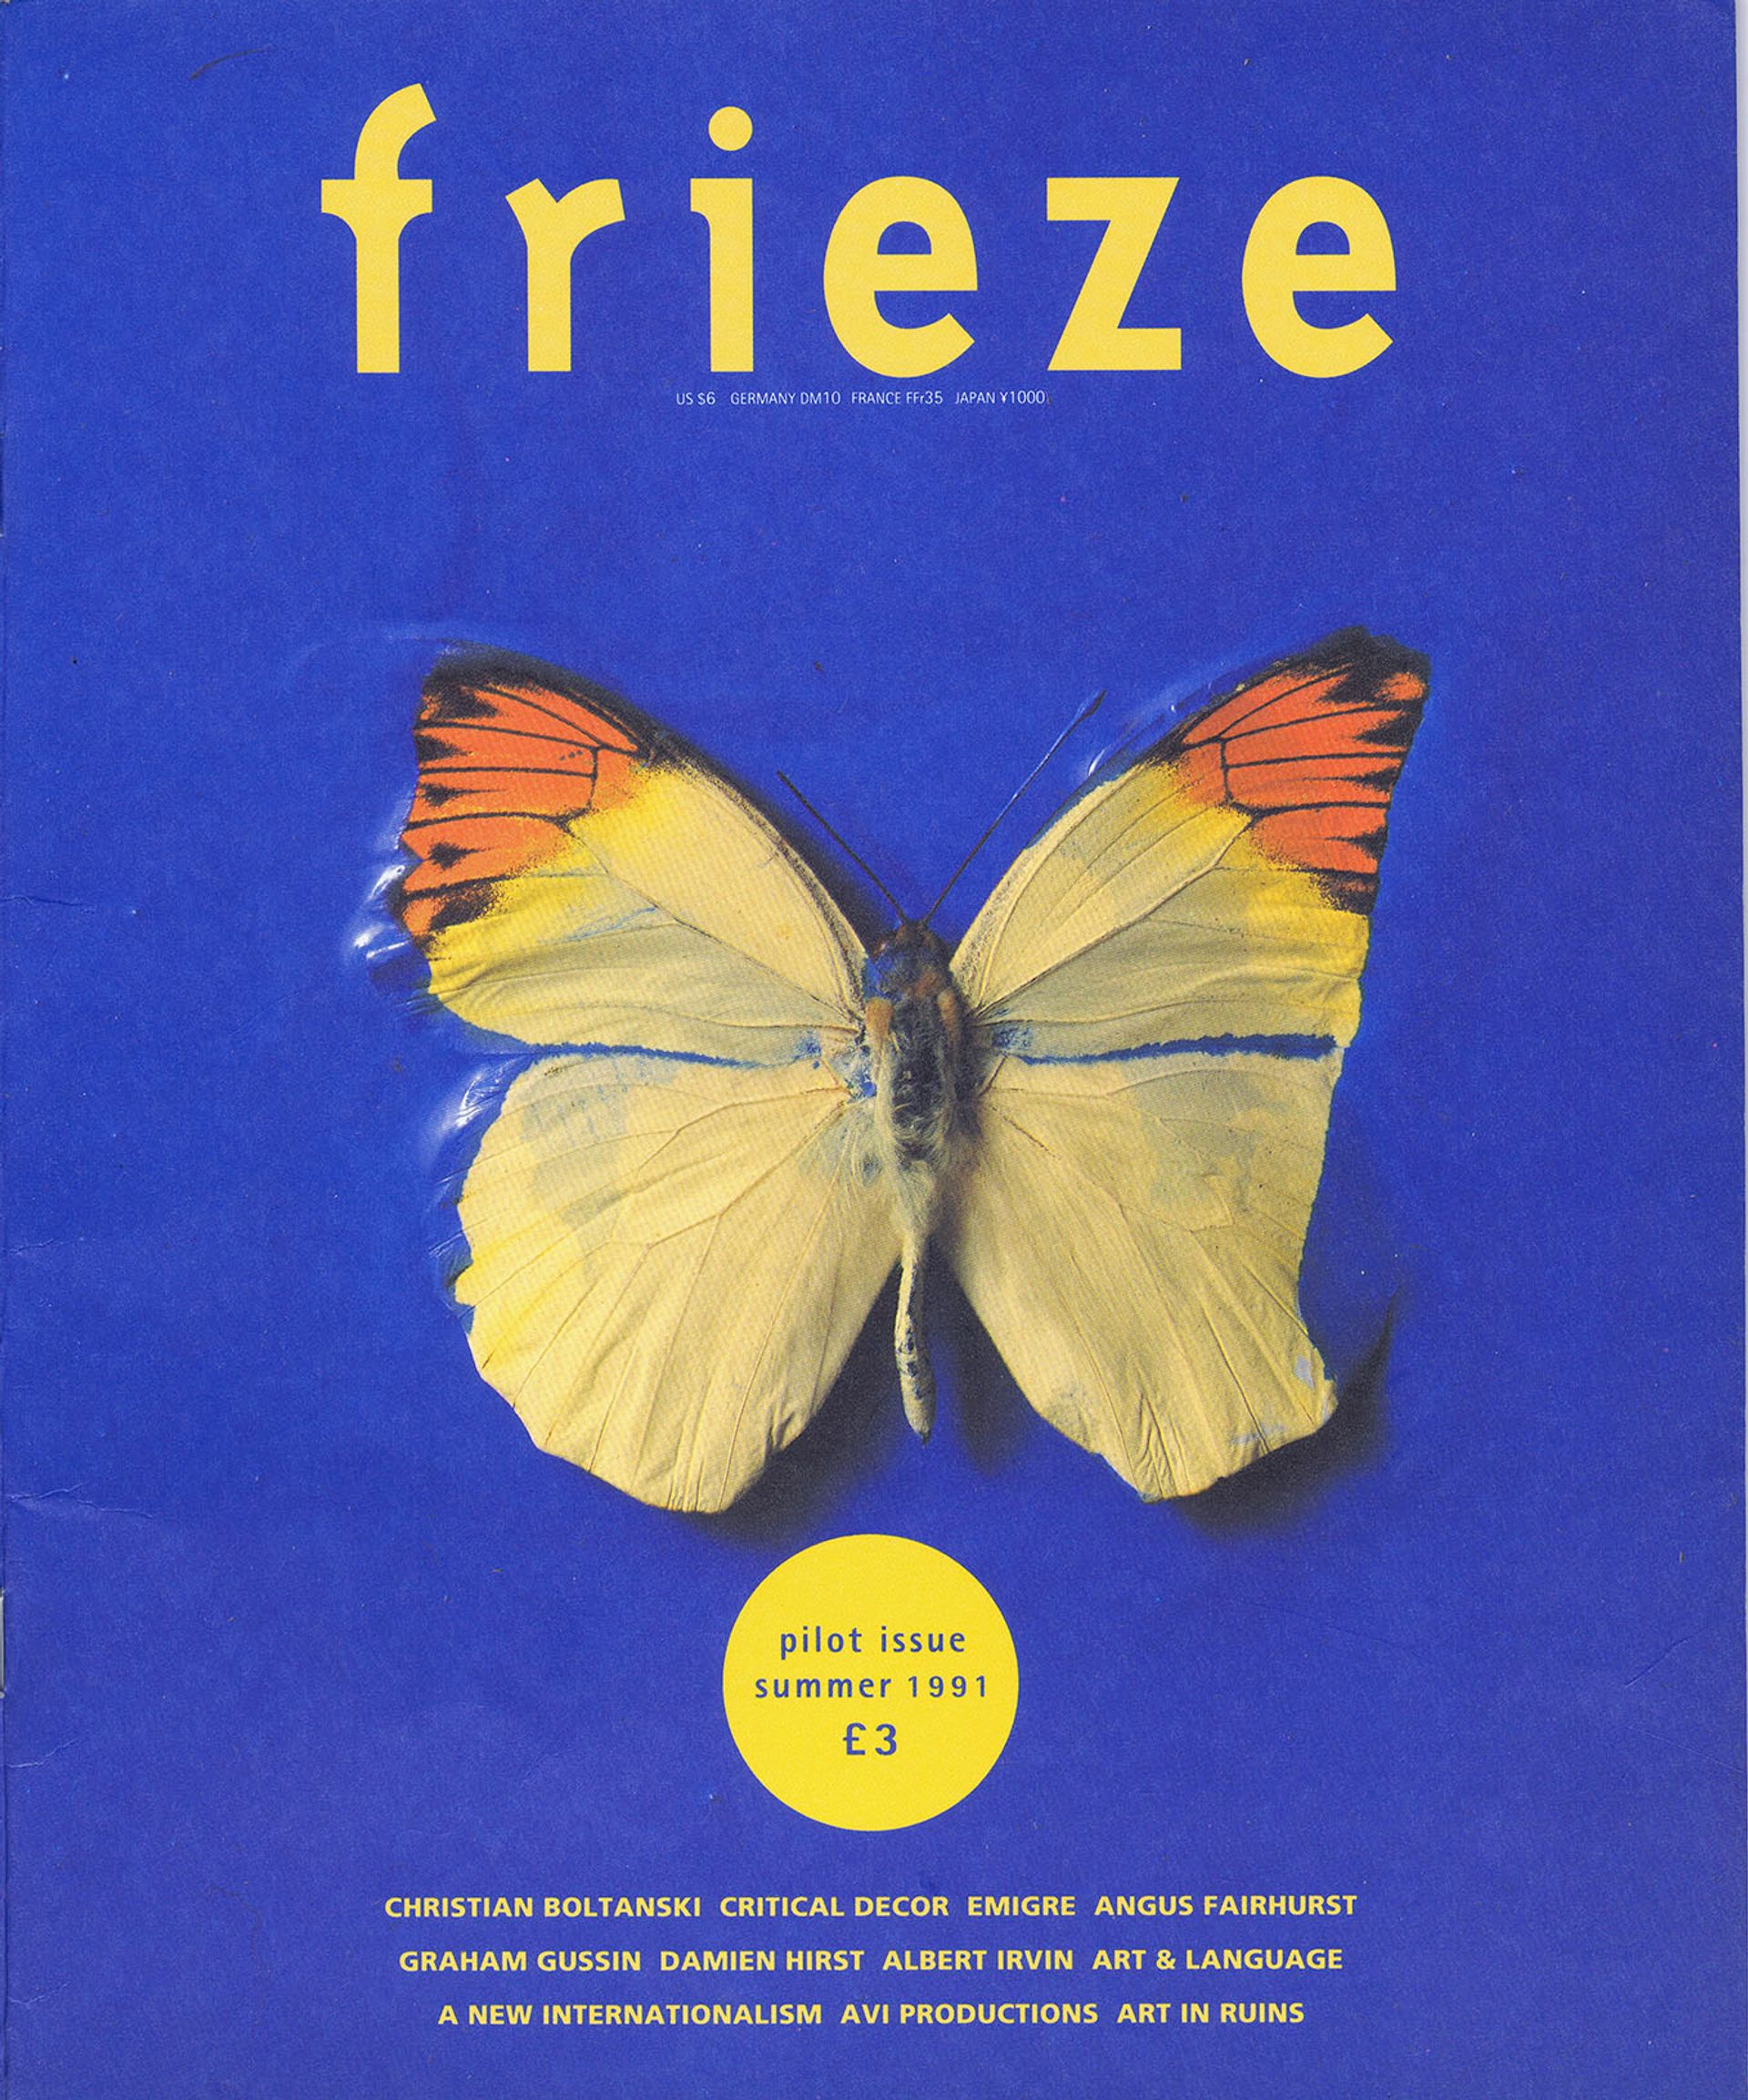 The cover of Frieze's pilot issue from summer 1991 Courtesy of Frieze